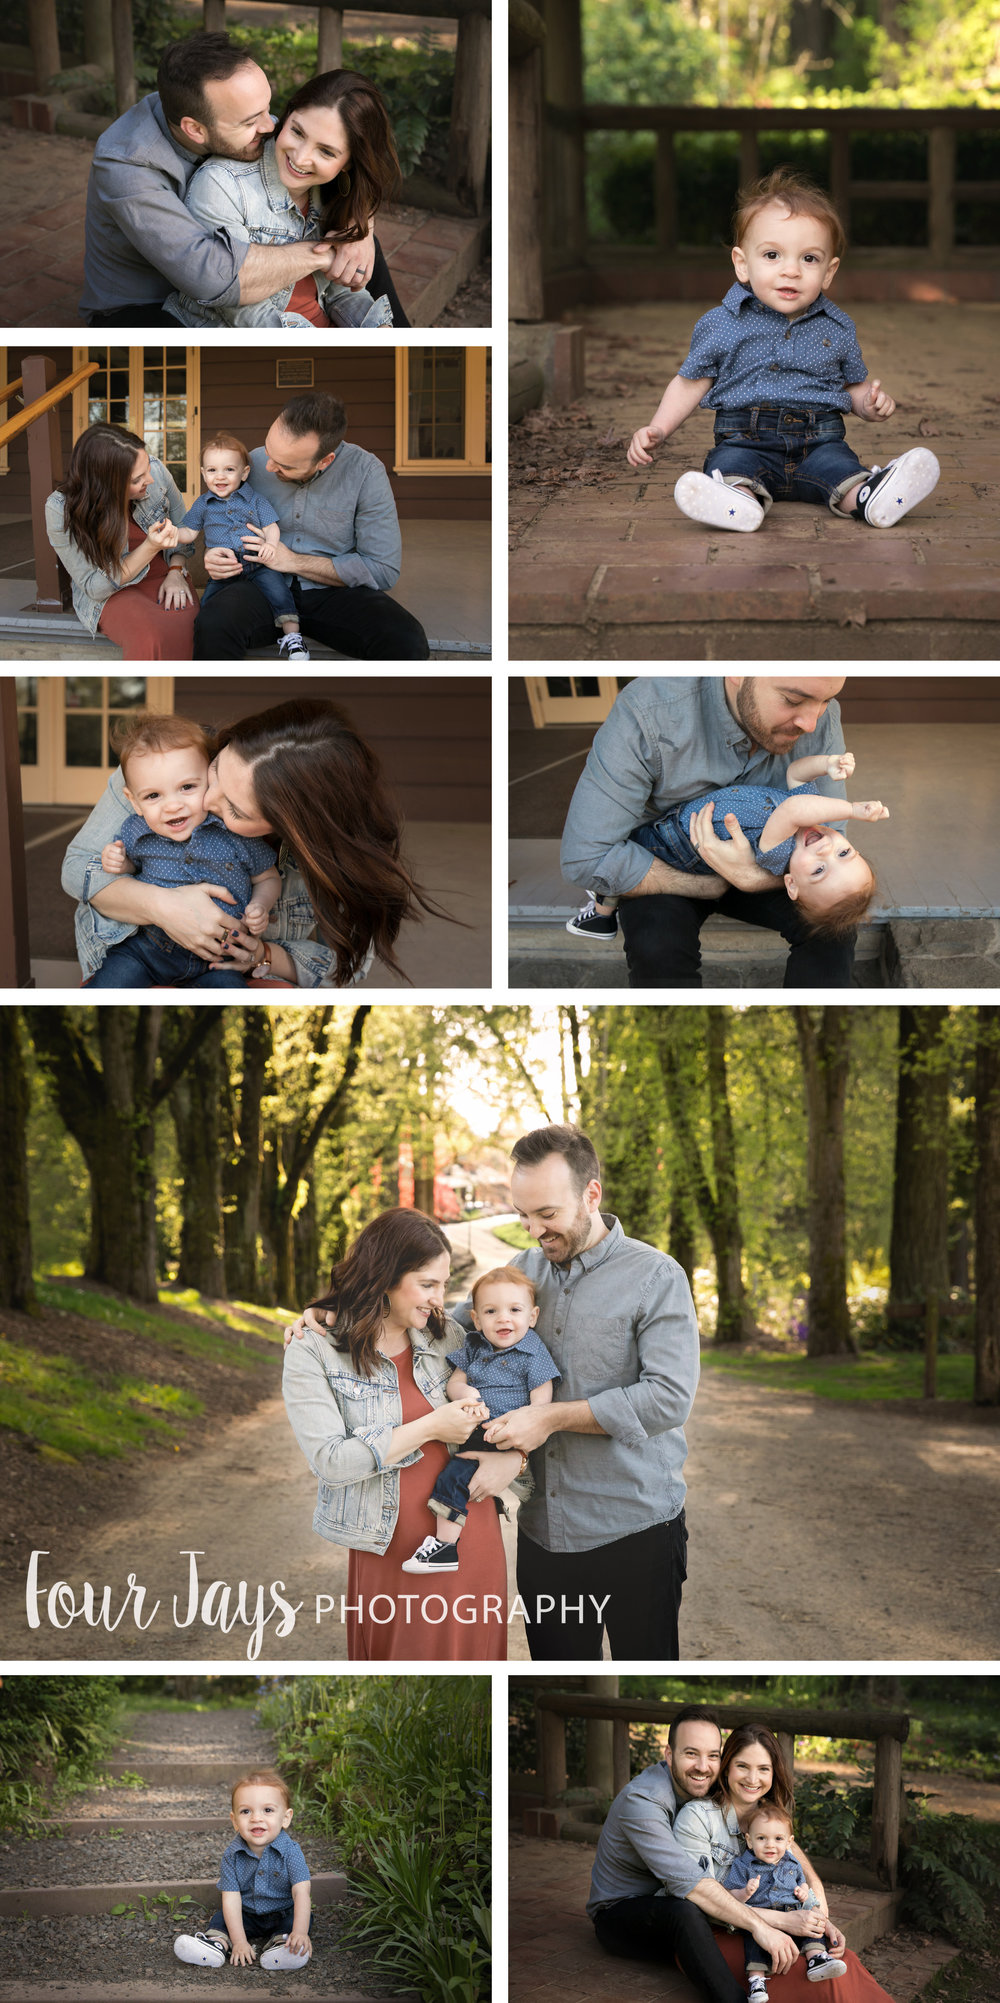 Best Outdoor Family Photographer Beaverton Oregon 2018 wm.jpg